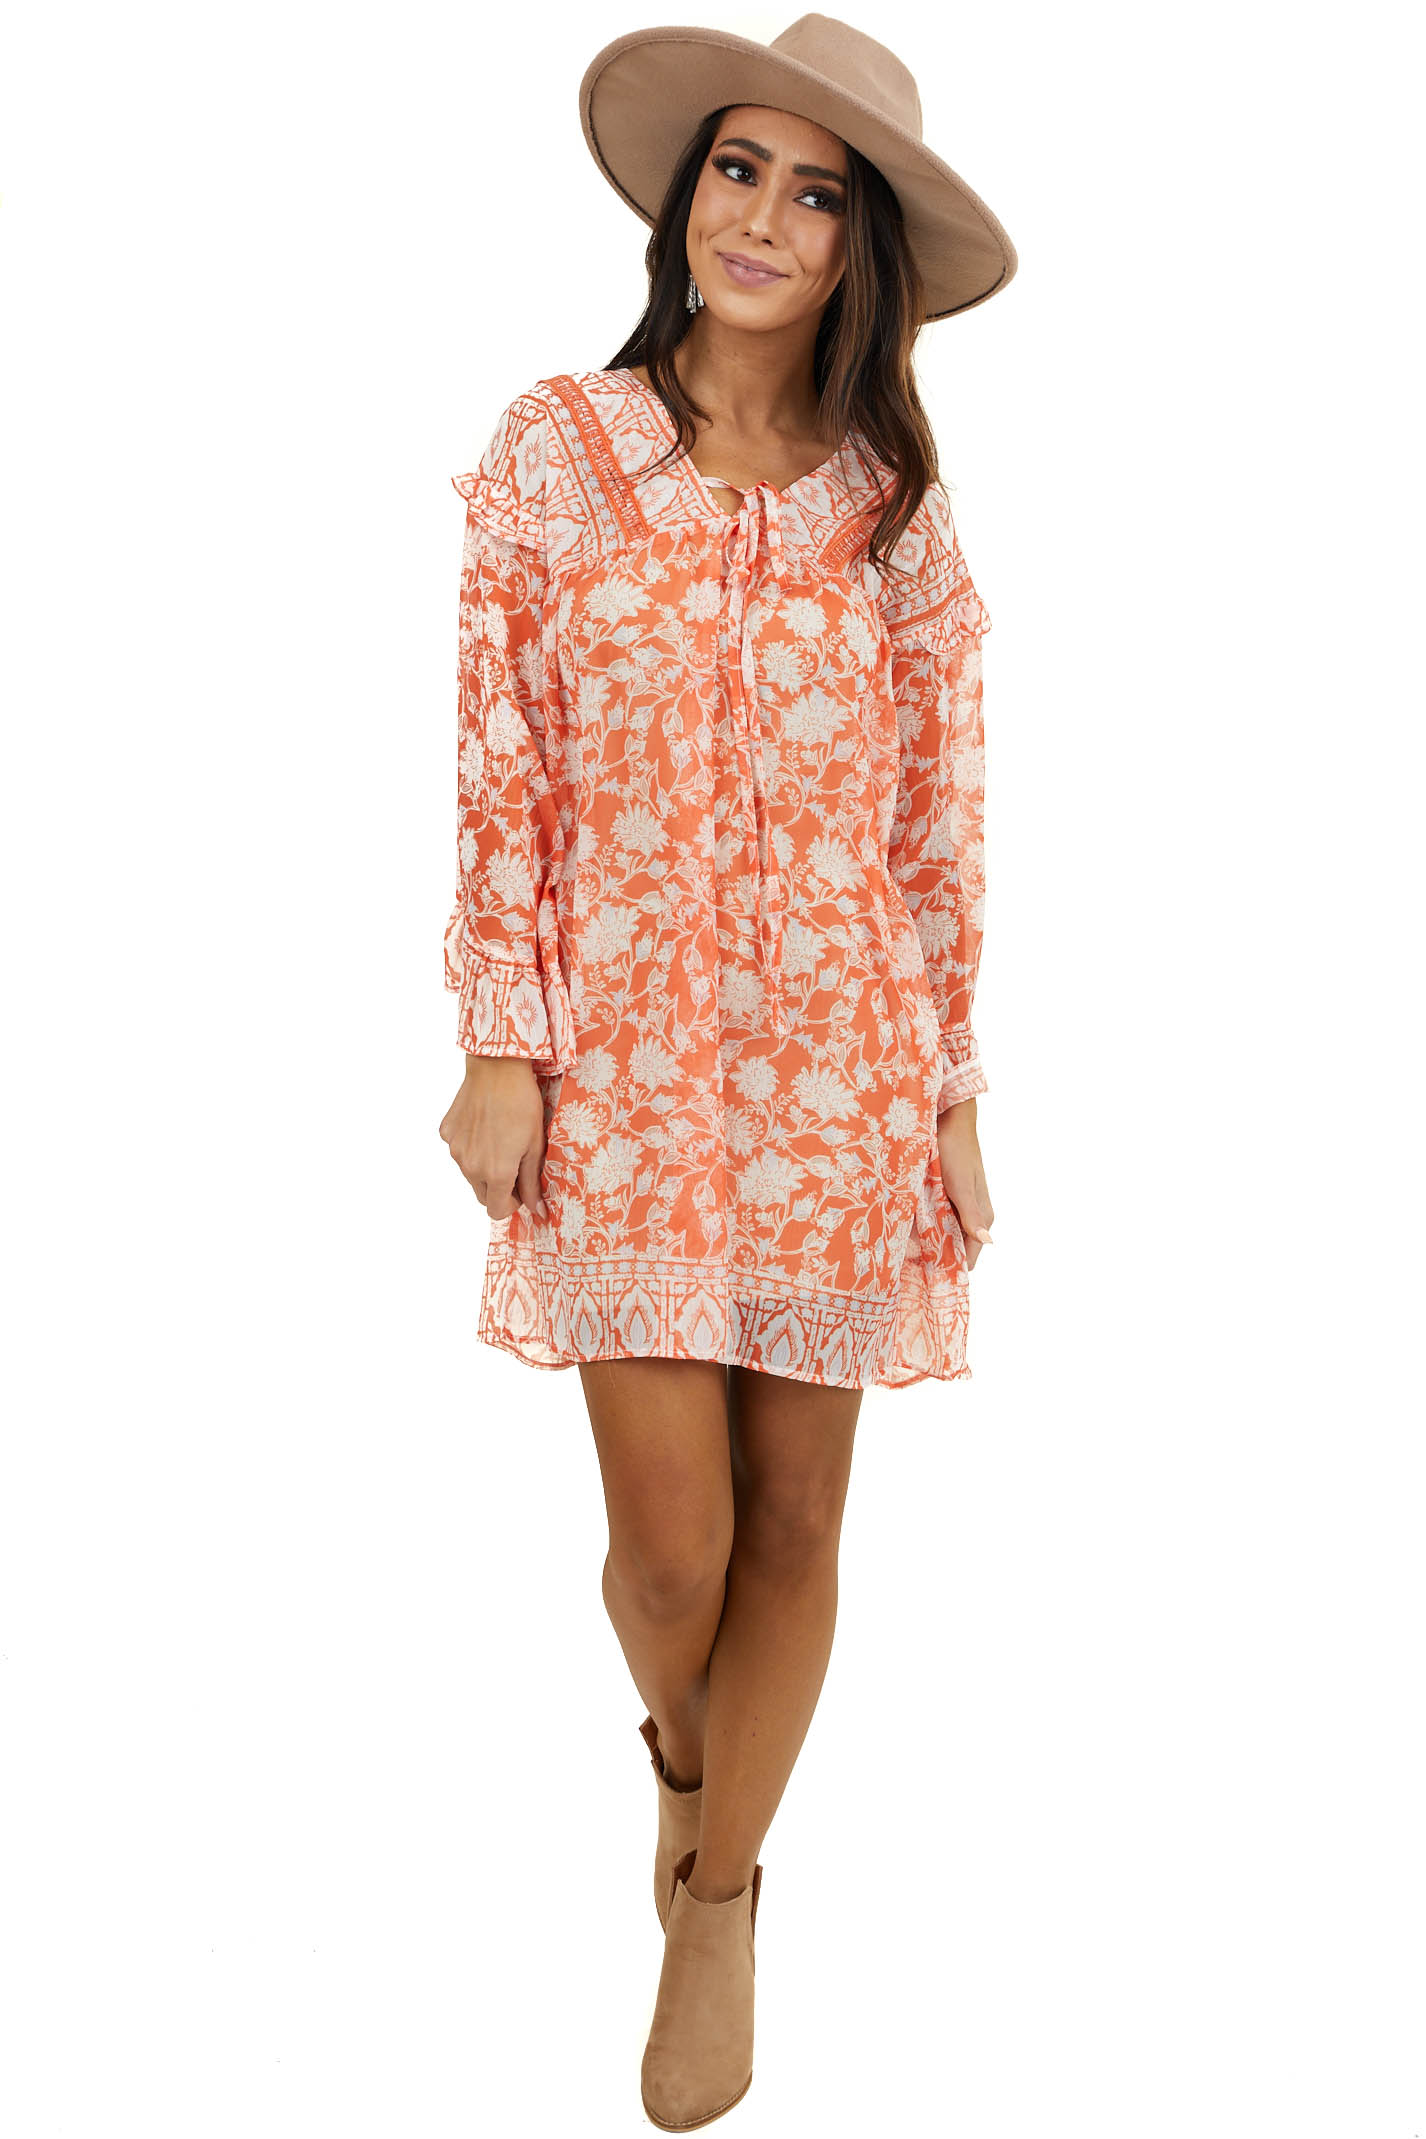 Bright Orange Floral Print Flowy Dress with Trumpet Sleeves